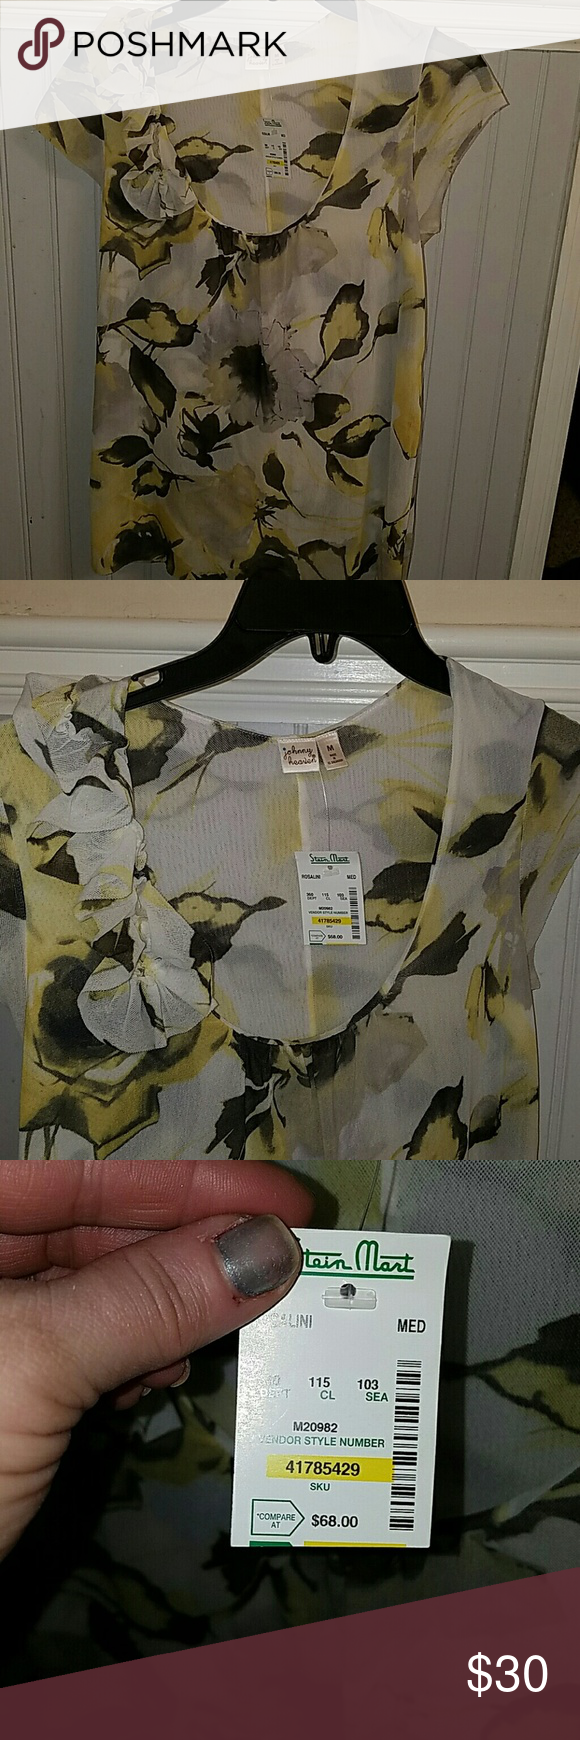 Beautful New blouse from Stein Mart. This is a beautiful blouse. Color is grey and yellow, ruffles on one side on the shoulder. Fully lined. Really pretty blouse. Johnny Reaven Tops Blouses